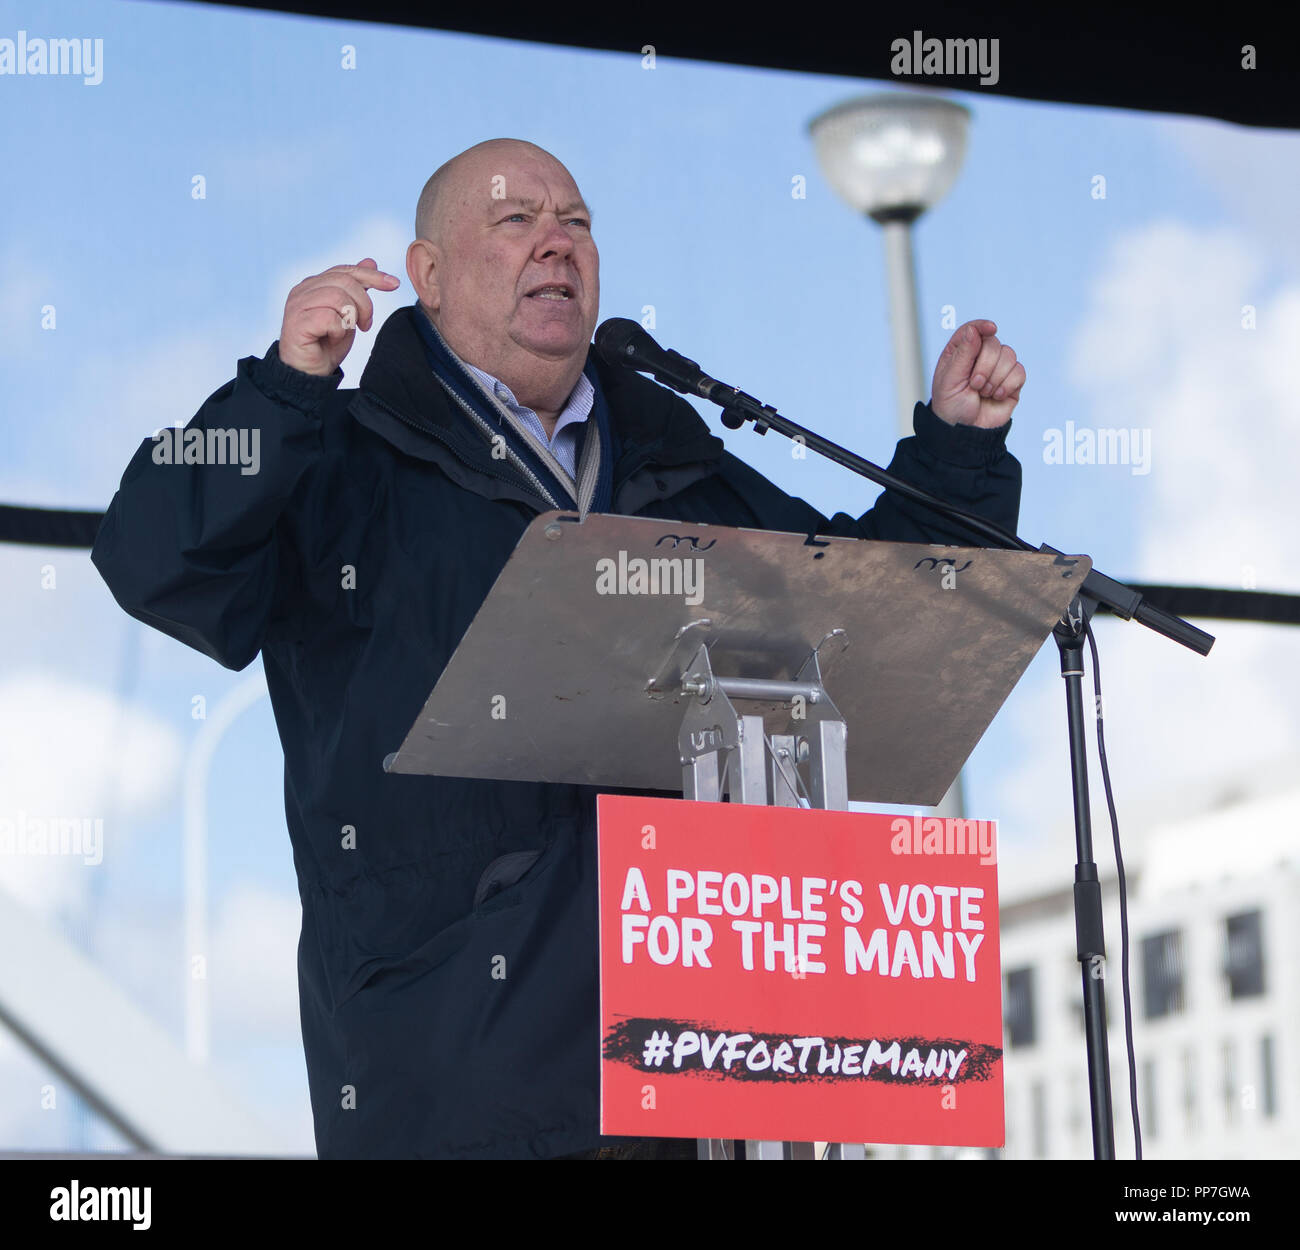 Liverpool, UK. Sunday 23rd September 2018.Joe Anderson, Mayor of Liverpool talks at the Pier Head at rally after the march. © Phil Portus / Alamy Live News - Stock Image